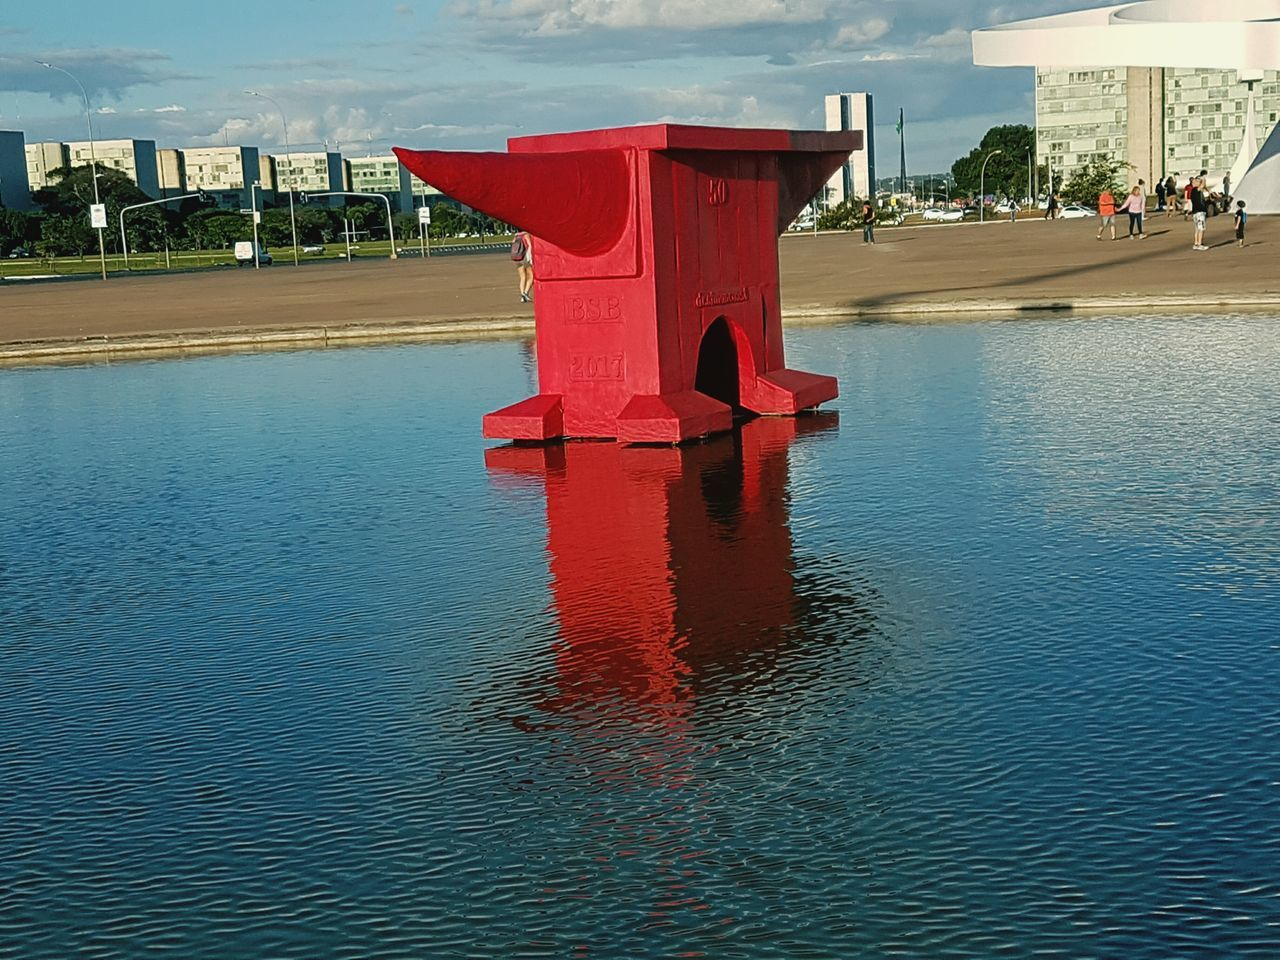 Red Water Day Outdoors No People Brasília - Brazil City Modern Architecture